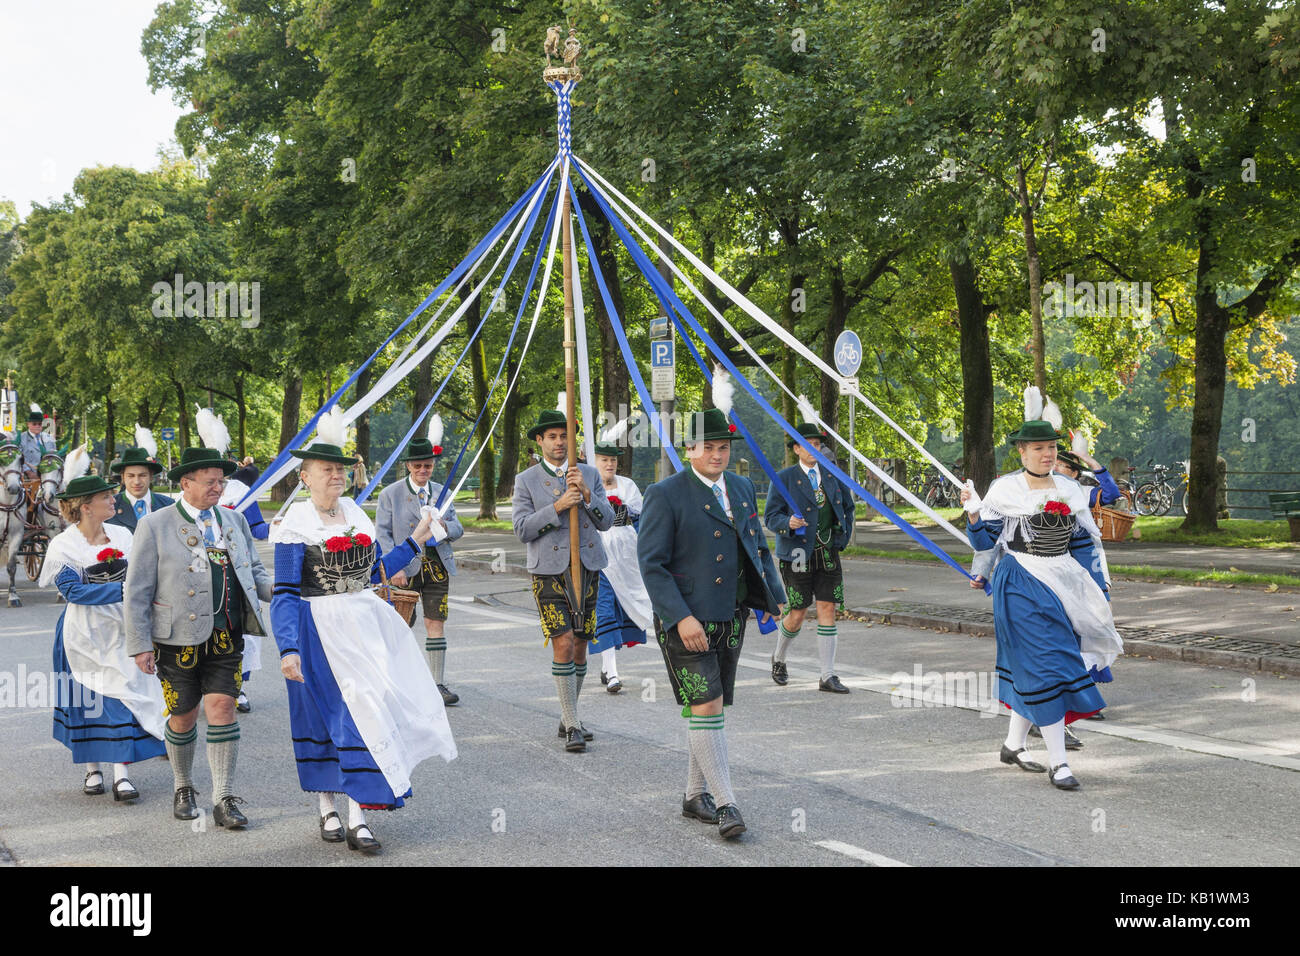 Germany, Bavaria, Munich, Oktoberfest, traditional parade, participant, - Stock Image